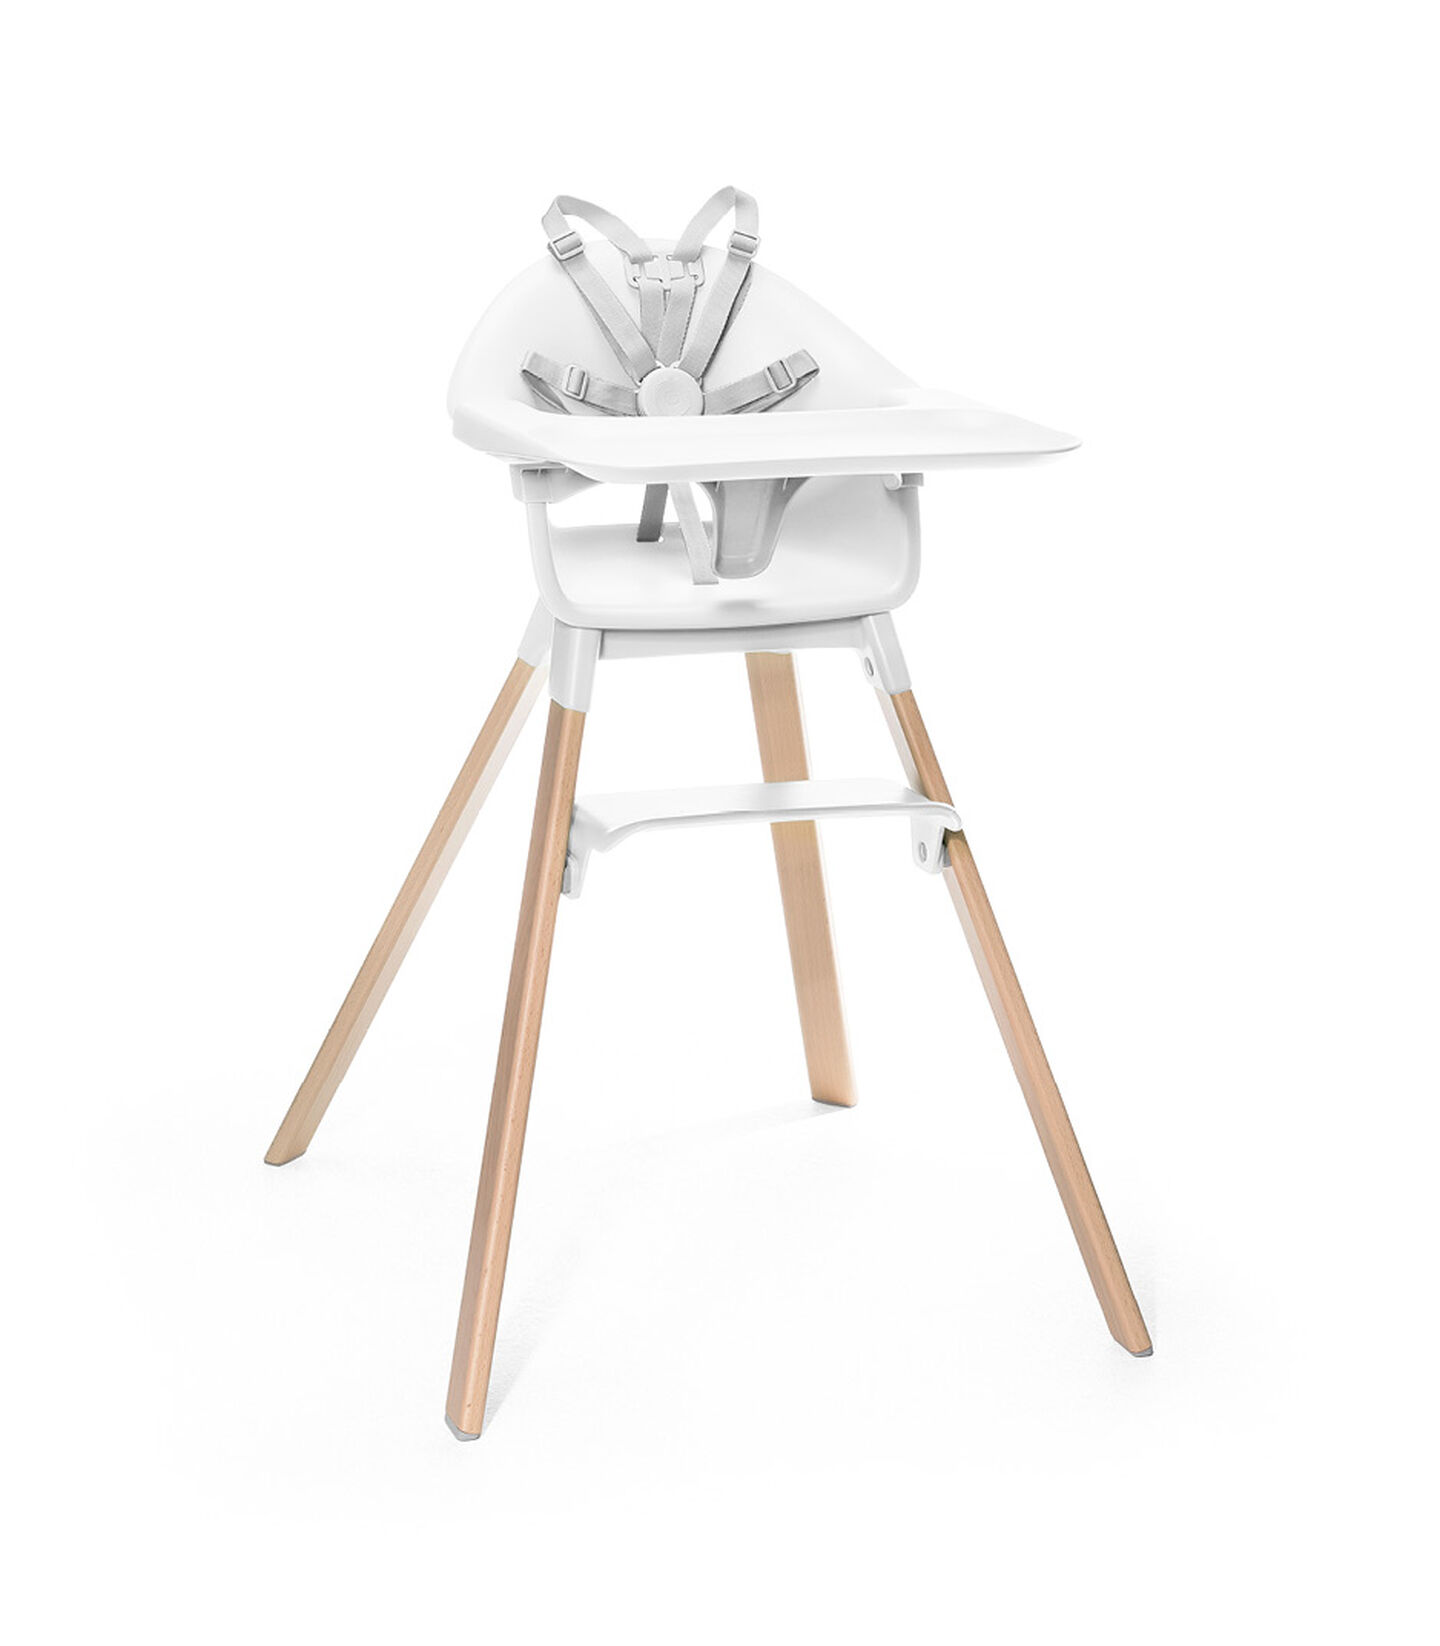 Stokke® Clikk™ High Chair White, Bianco, mainview view 2